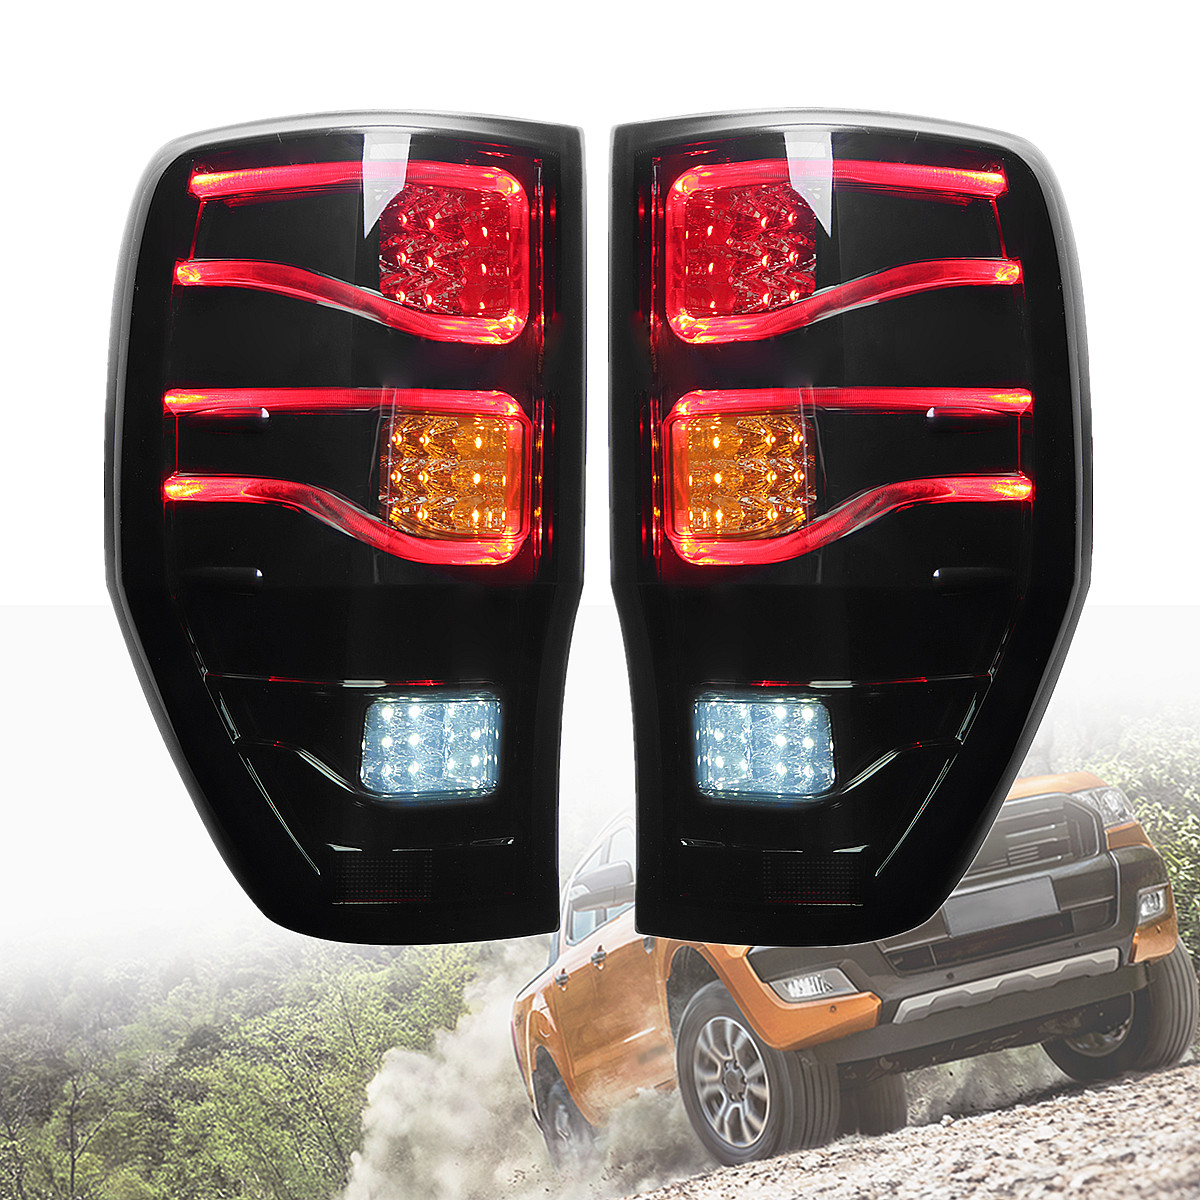 2Pcs for Ford Ranger 2012-2018 Smoked Auto Car LED Rear Tail Lights Brake Lamps ABS Light Size Approx 27x43cm free shipping led tail lamps assy bm style light bar rear lamps tail lights fit for hyundai elantra 2012 2015